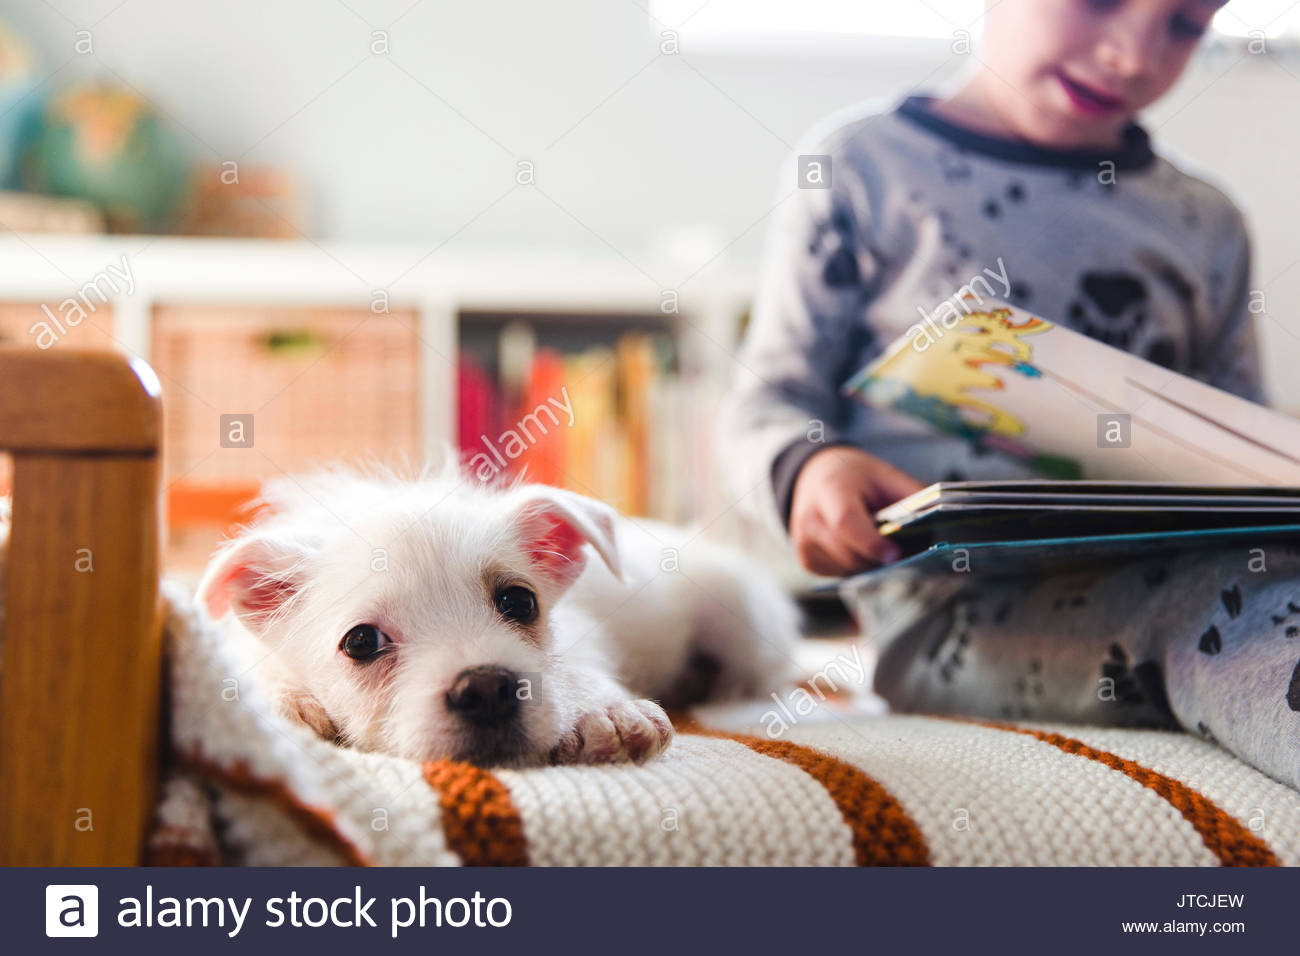 A puppy sitting on a bed next to a child, boy reading a book. - Stock Image